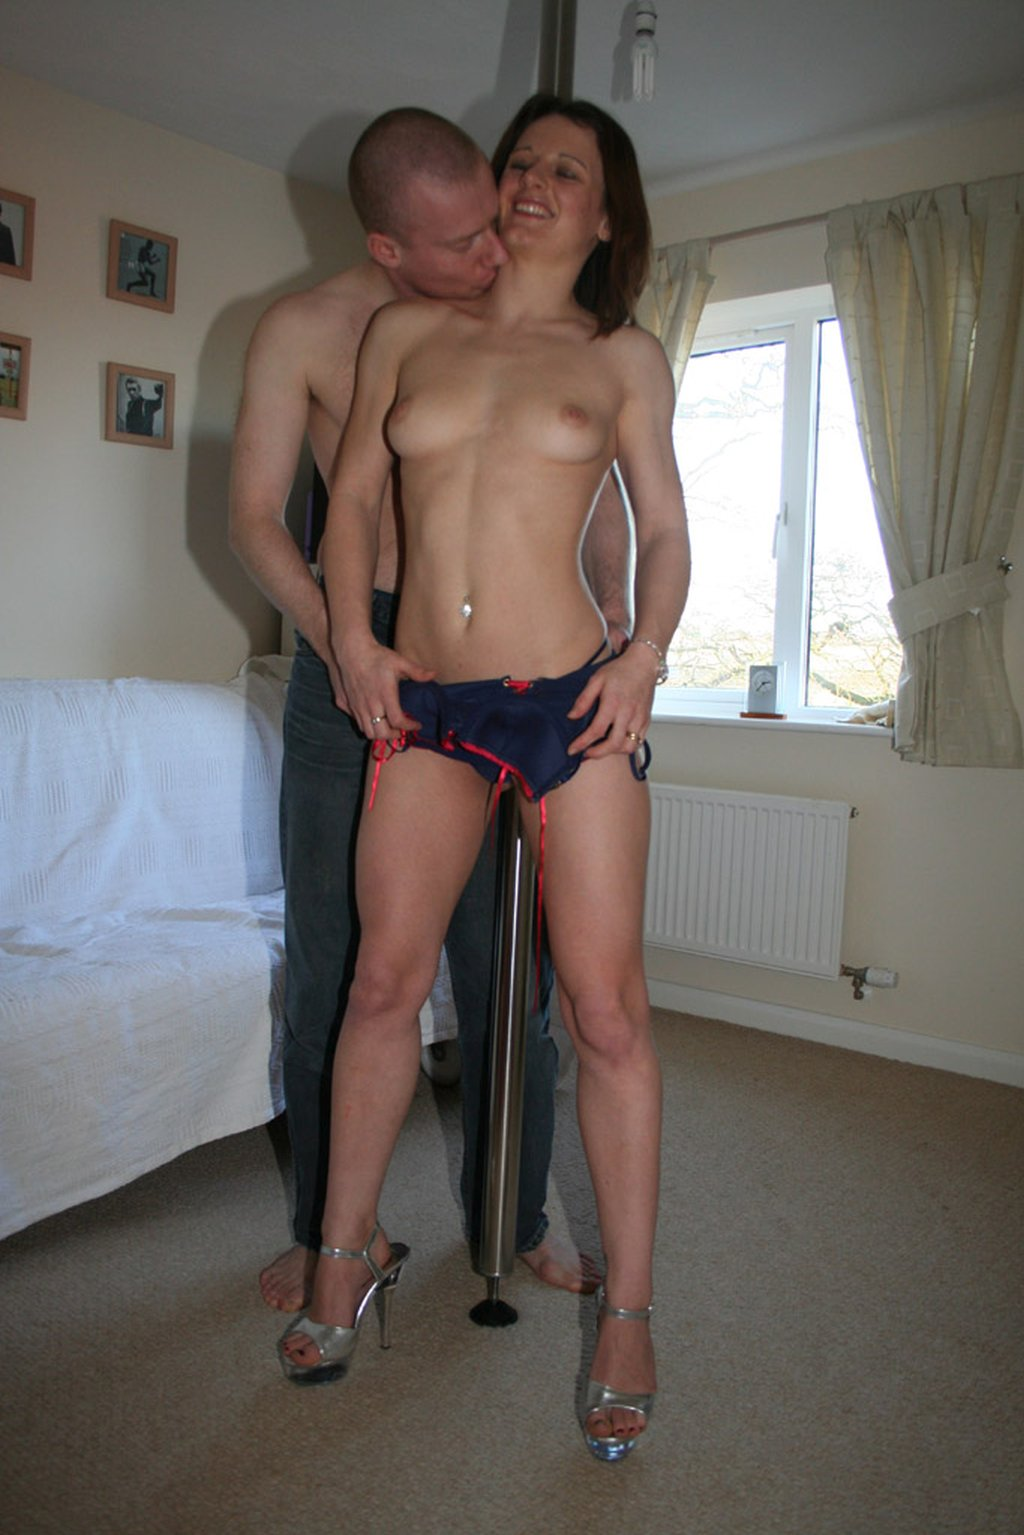 Ben dover and pascal ass fucking and double penetration - 4 5